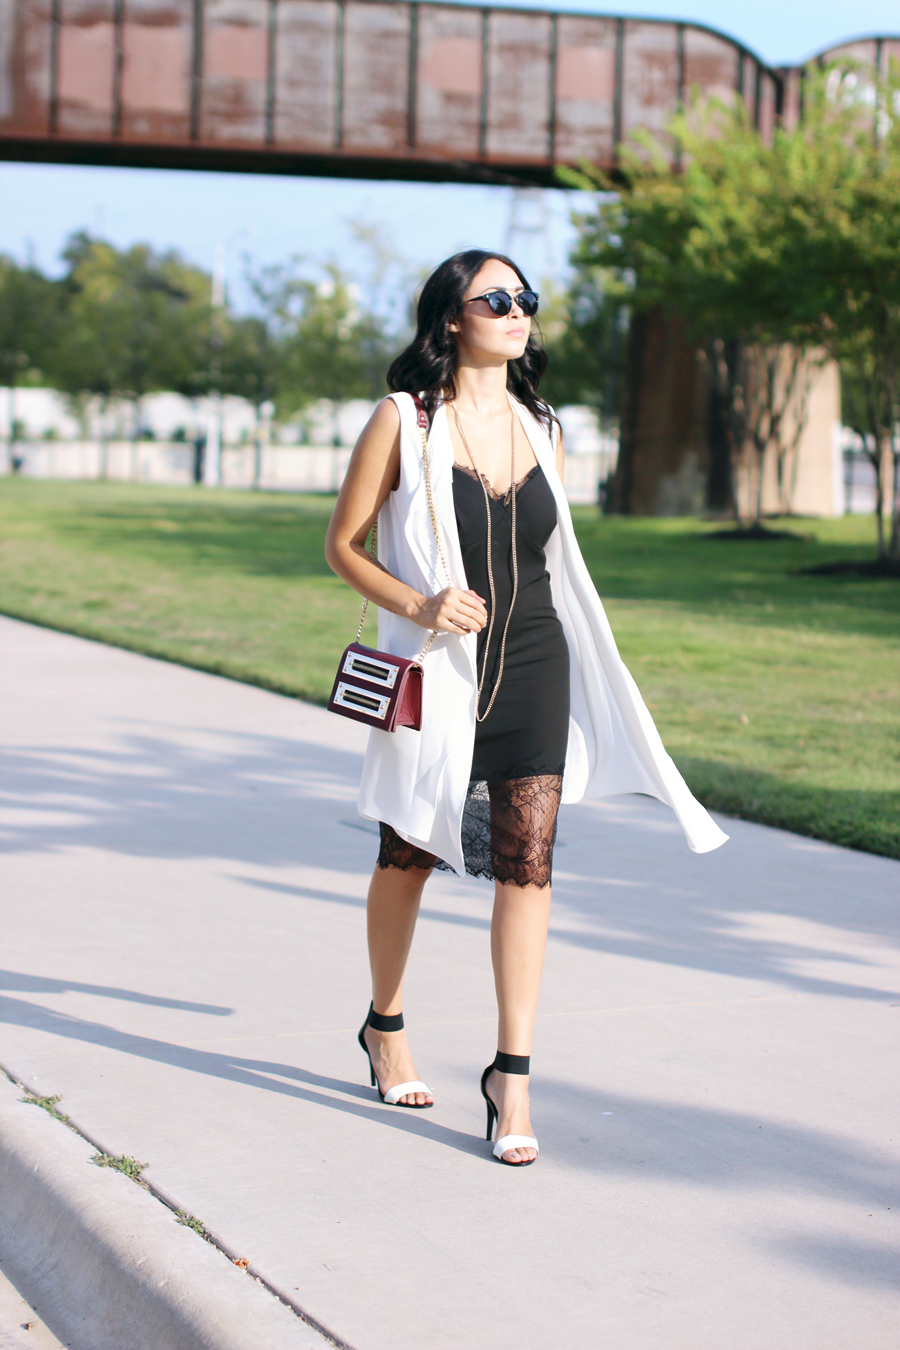 FIXIN-TO-THRILL-SLIP-DRESS-LONGLINE-VEST-BLACK-WHITE-FALL-ATX-AUSTIN-STYLE-BLOG-SHIRTS-COLORS-TRENDS-FW15-TRENDY-CHIC-GLAM-FASHION-TEXAS-6